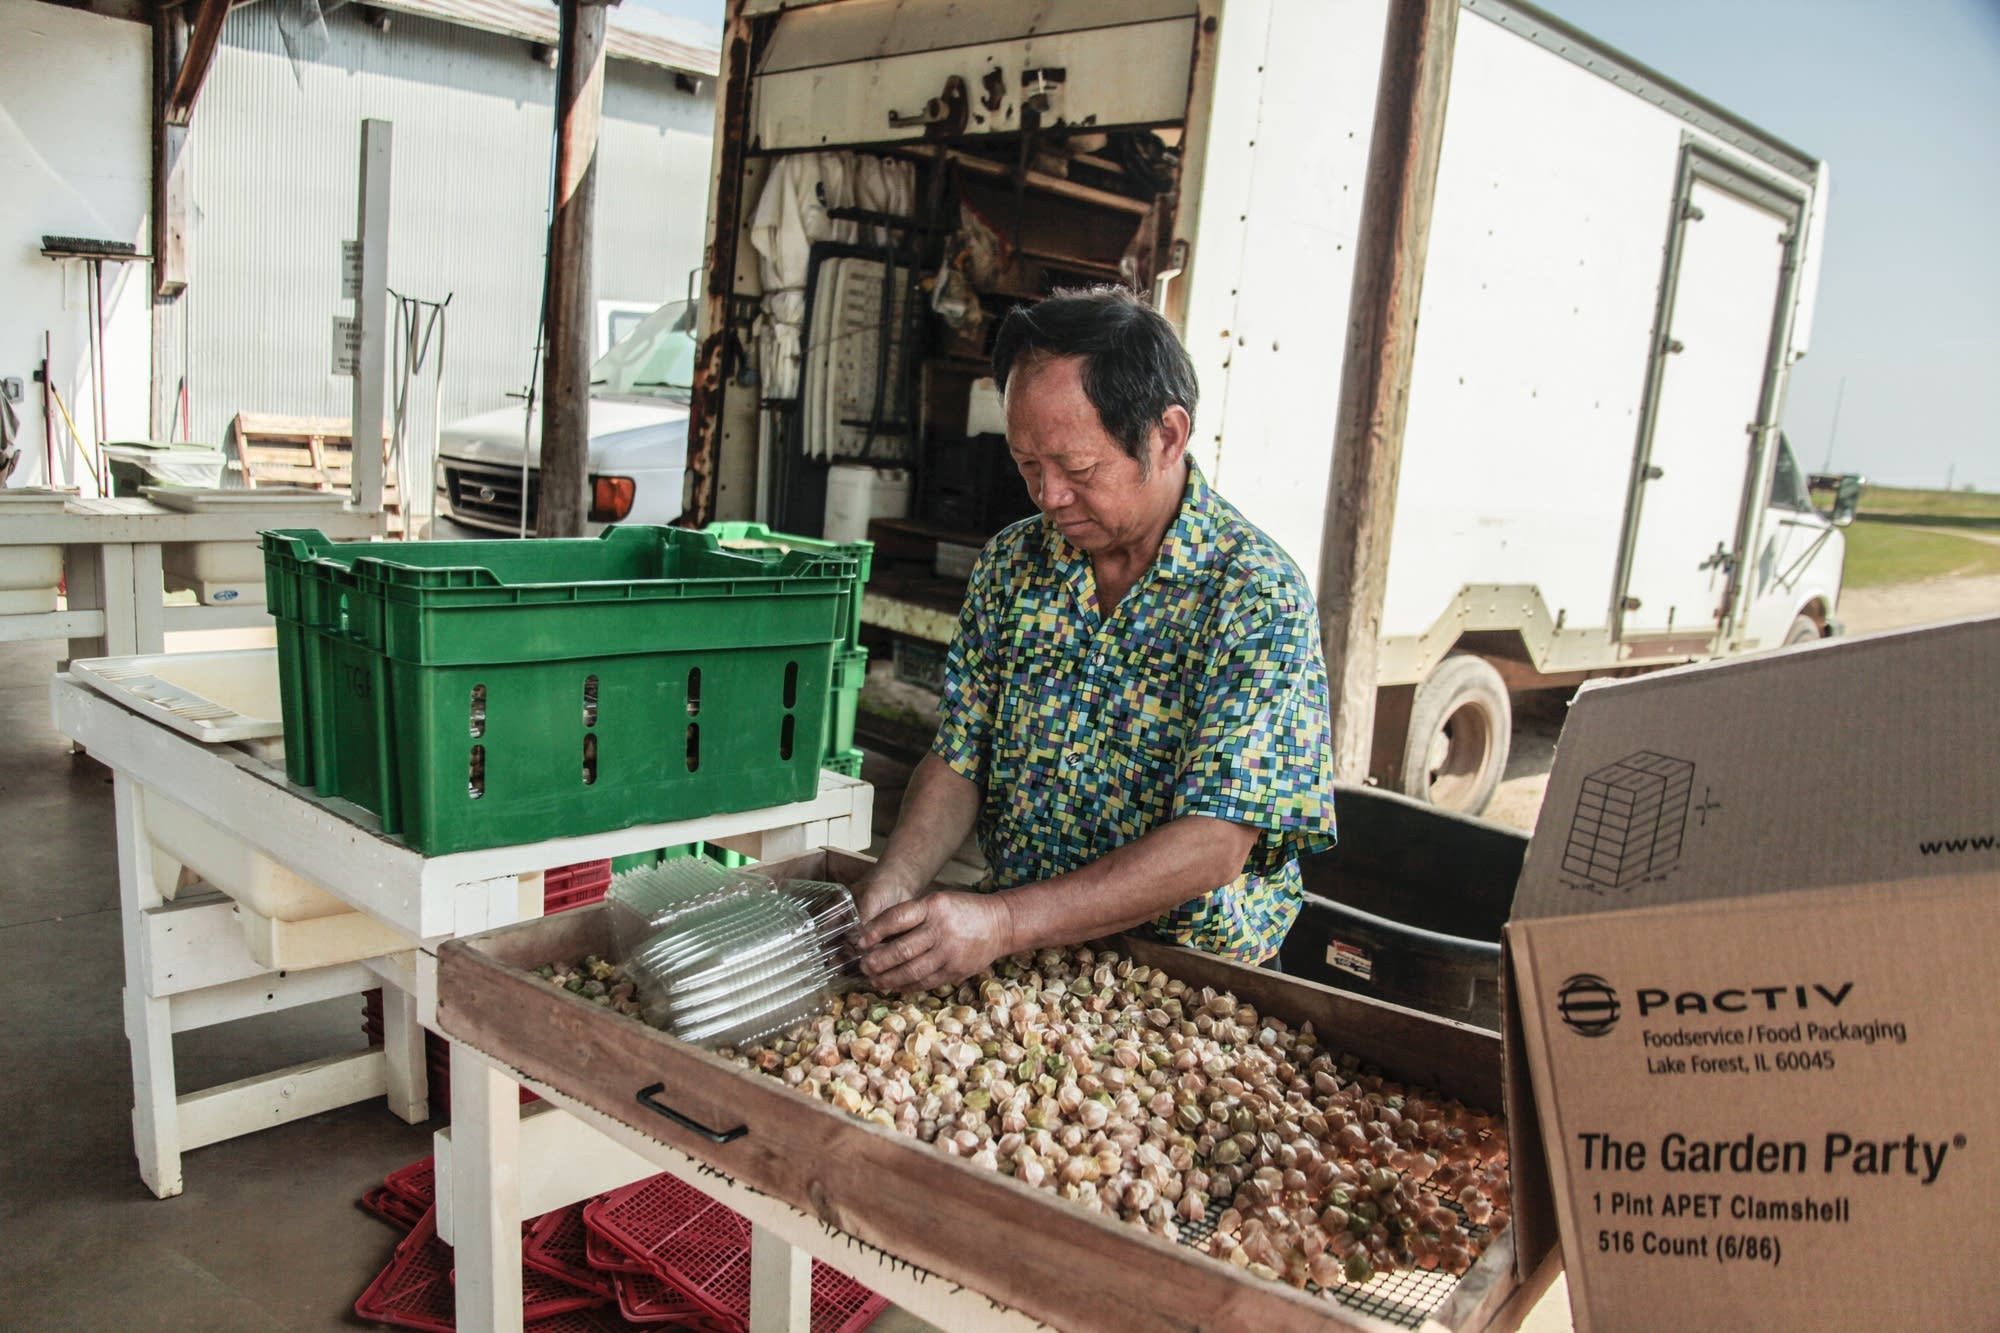 A man picks cherries to haul to local markets.